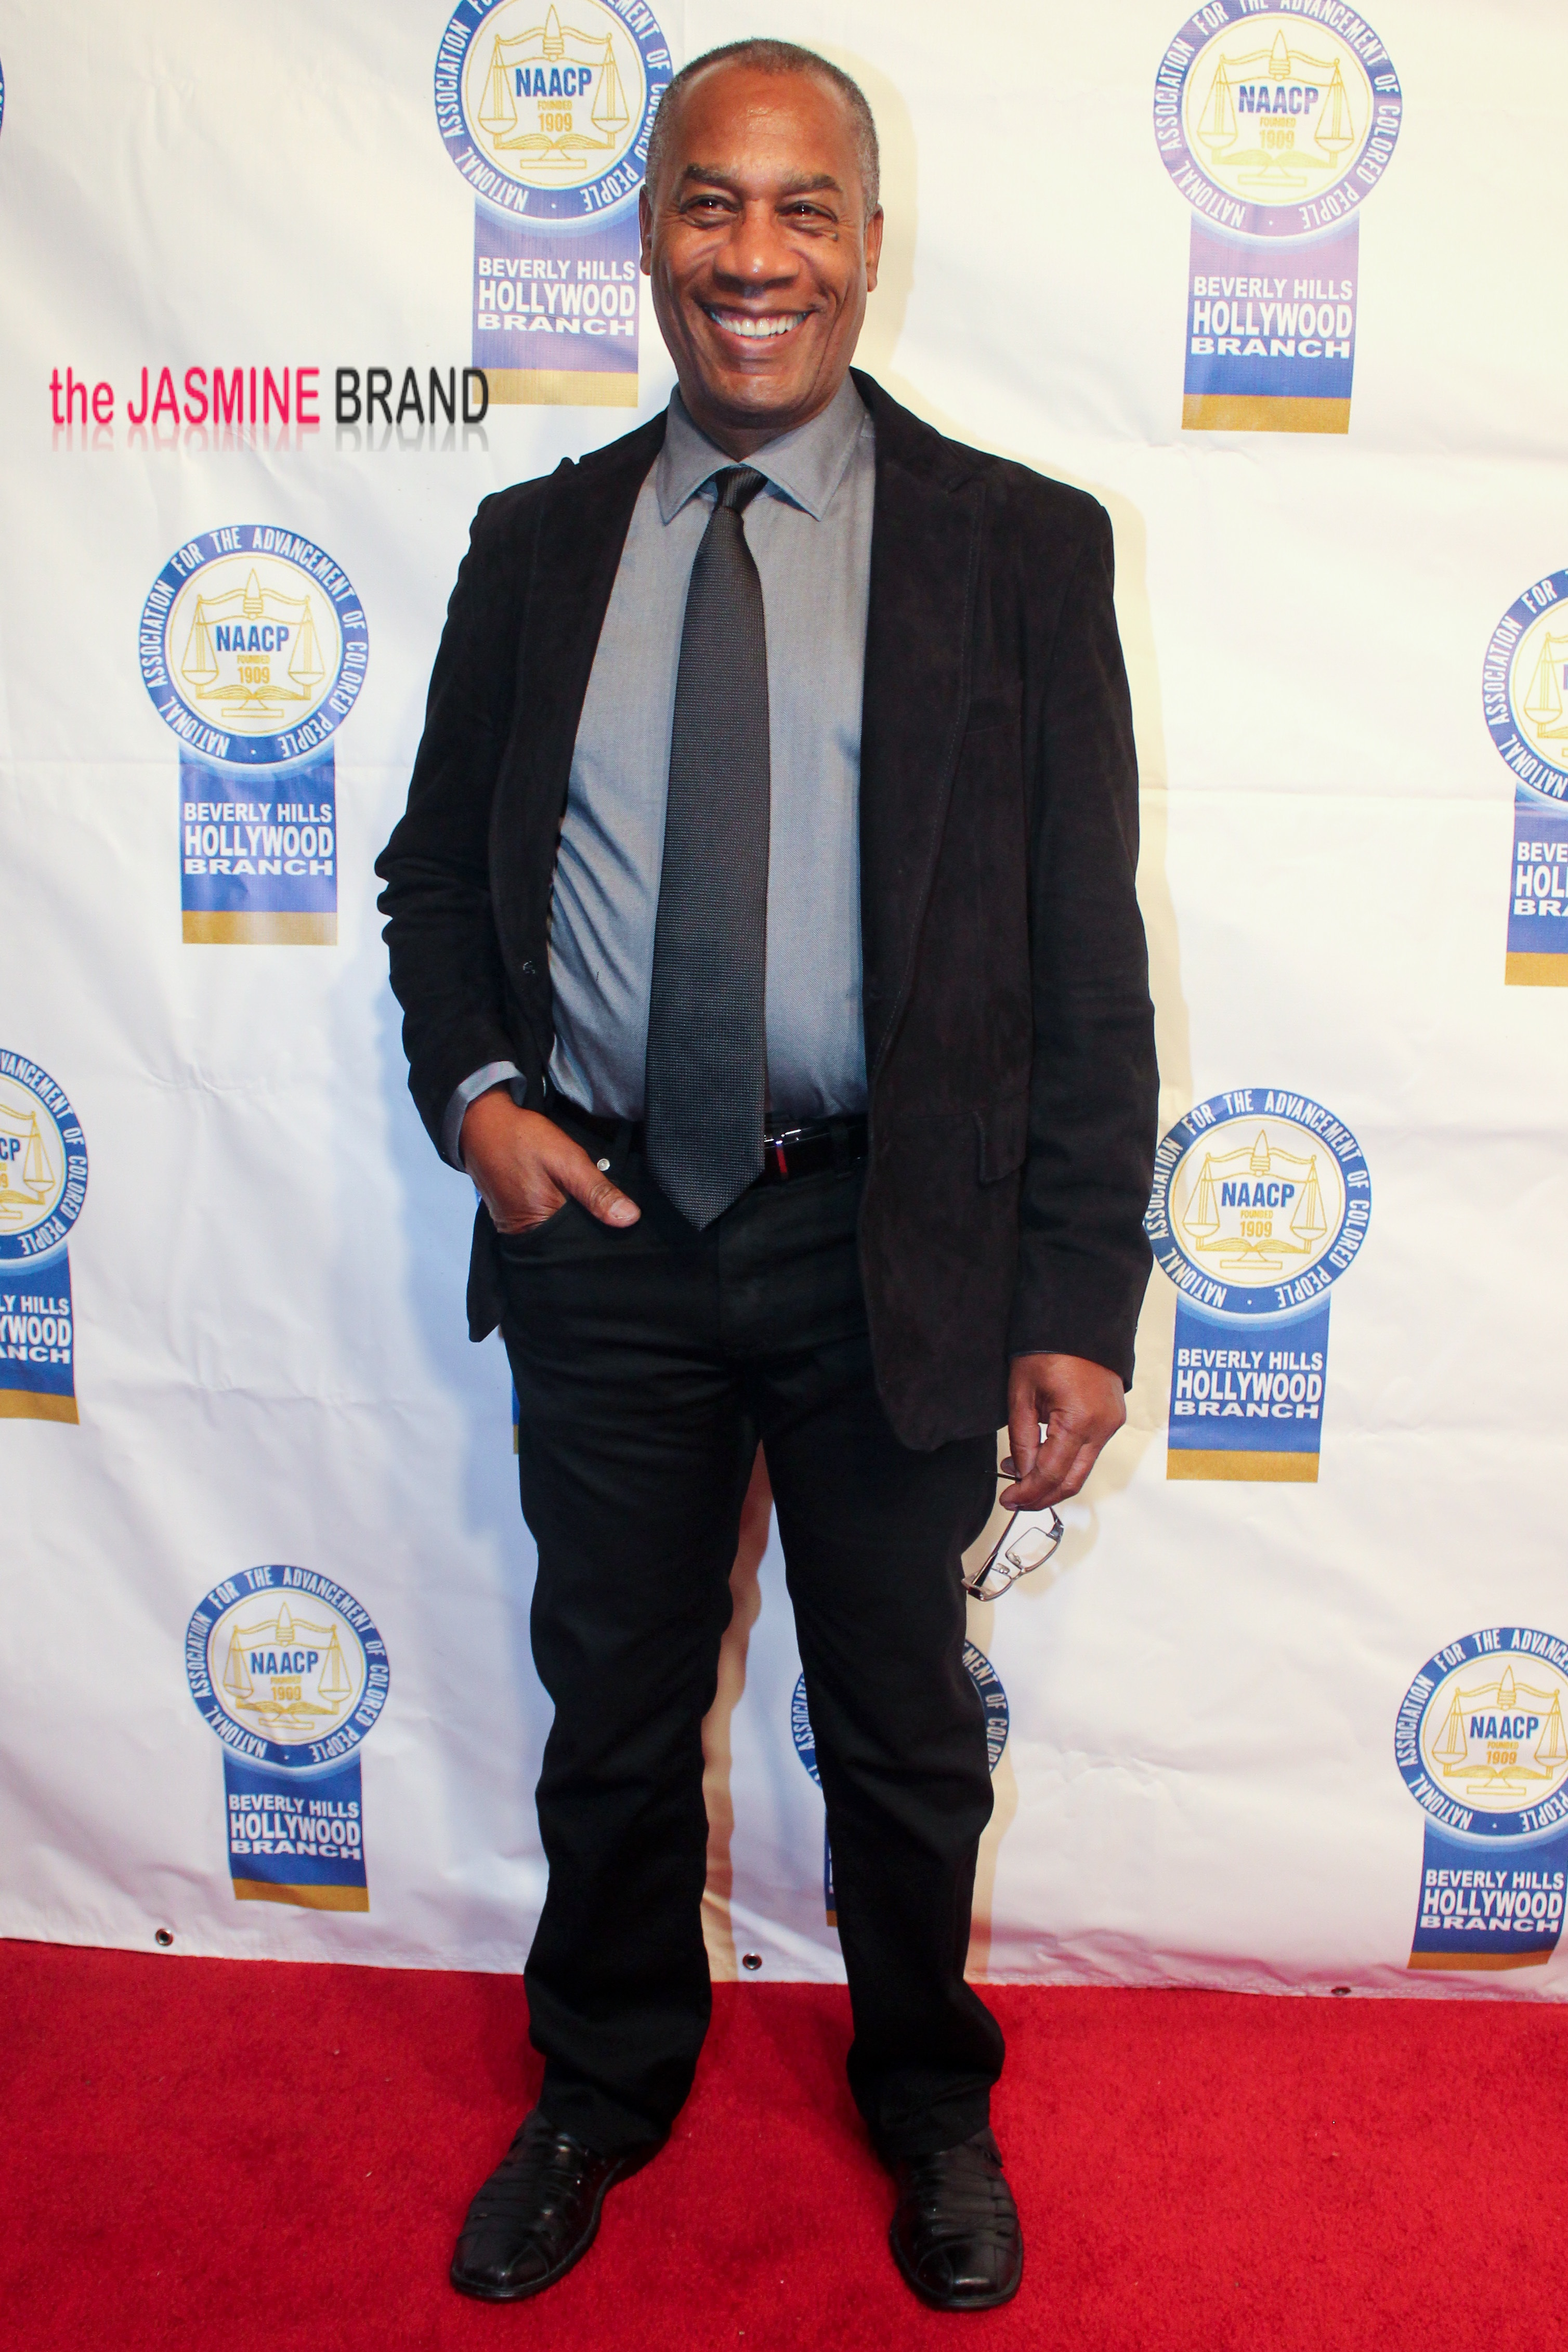 joe morton-naacp theater awards 2013-the jasmine brand